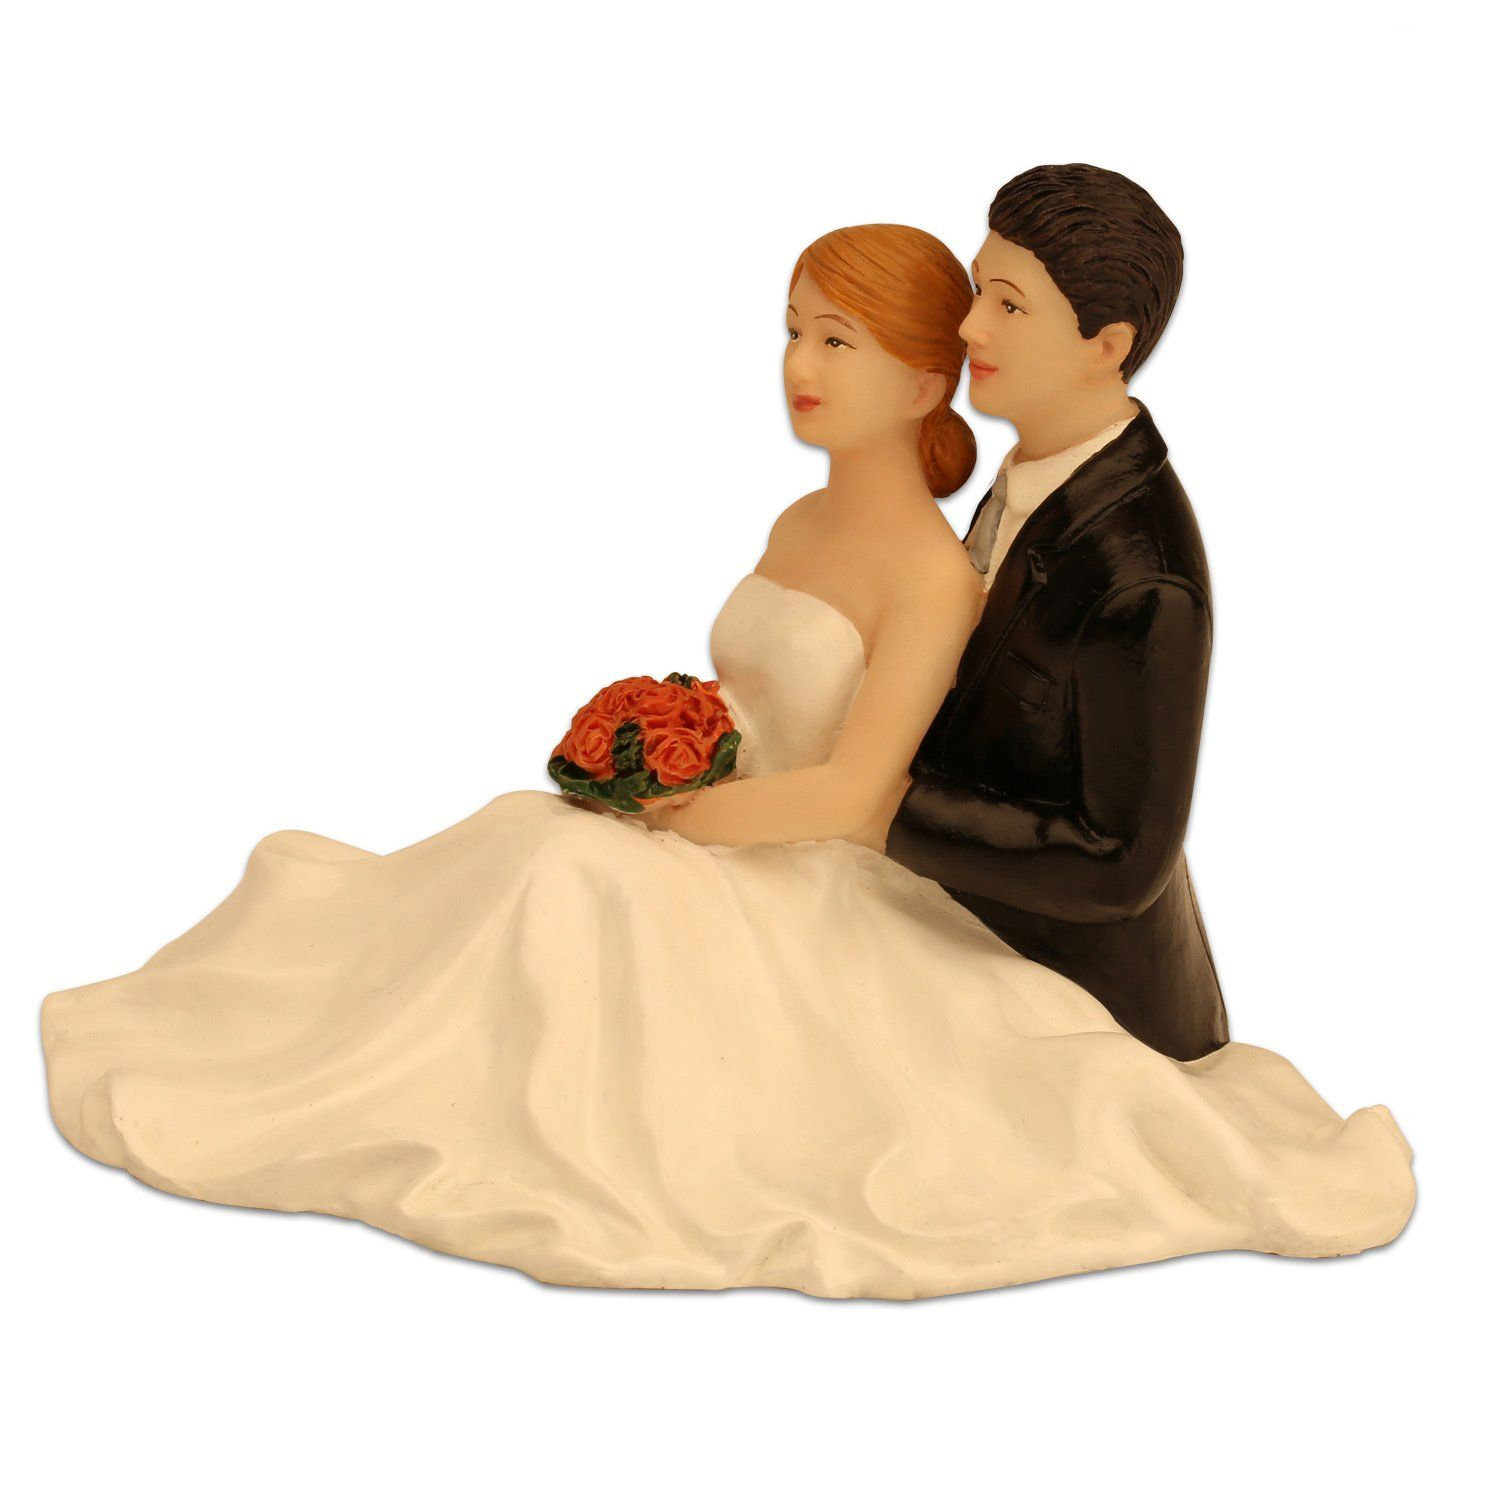 Ming People Weddling Couple Figurine Sitting Bride And Groom Cake Toppers More Info Could Be Found At The Im Bride And Groom Cake Toppers Grooms Cake Groom